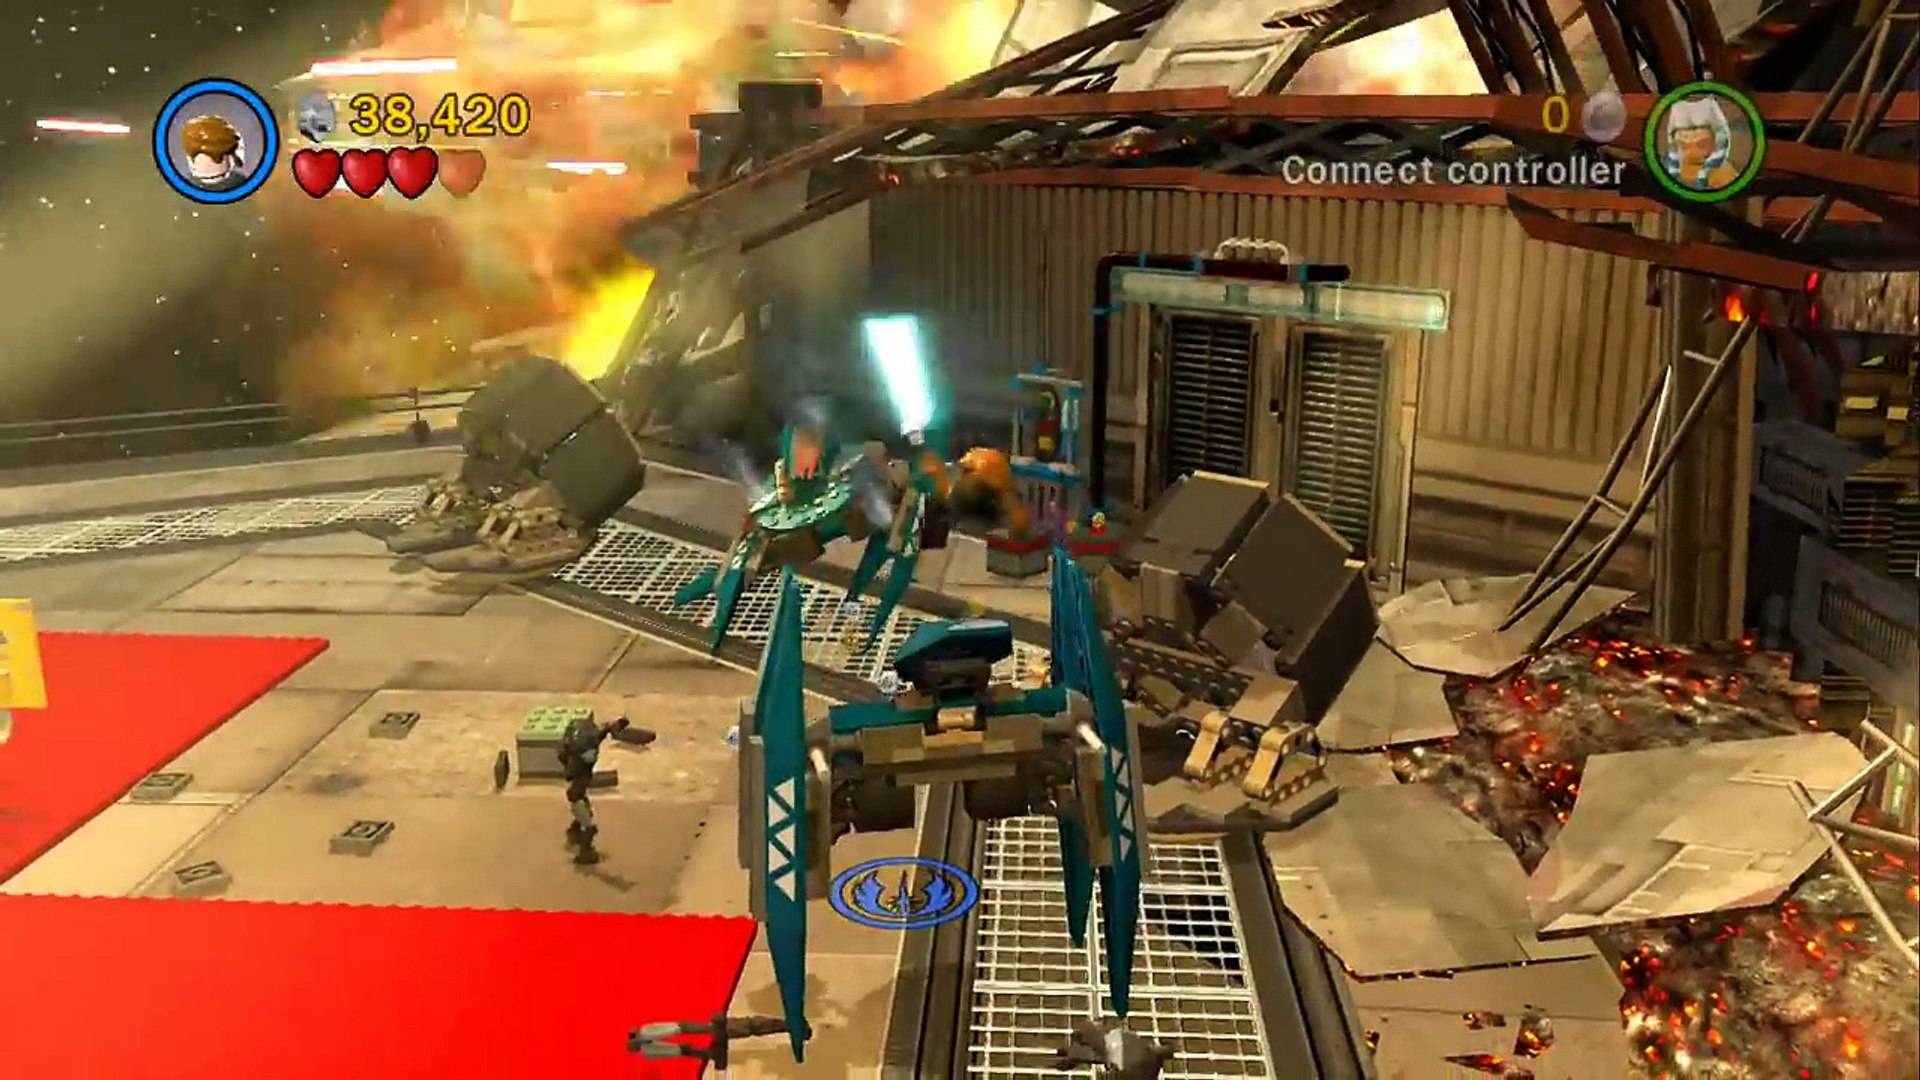 Lego Star Wars I The Clone Wars Walkthrough Part 17 Storm Over Ryloth Video Dailymotion